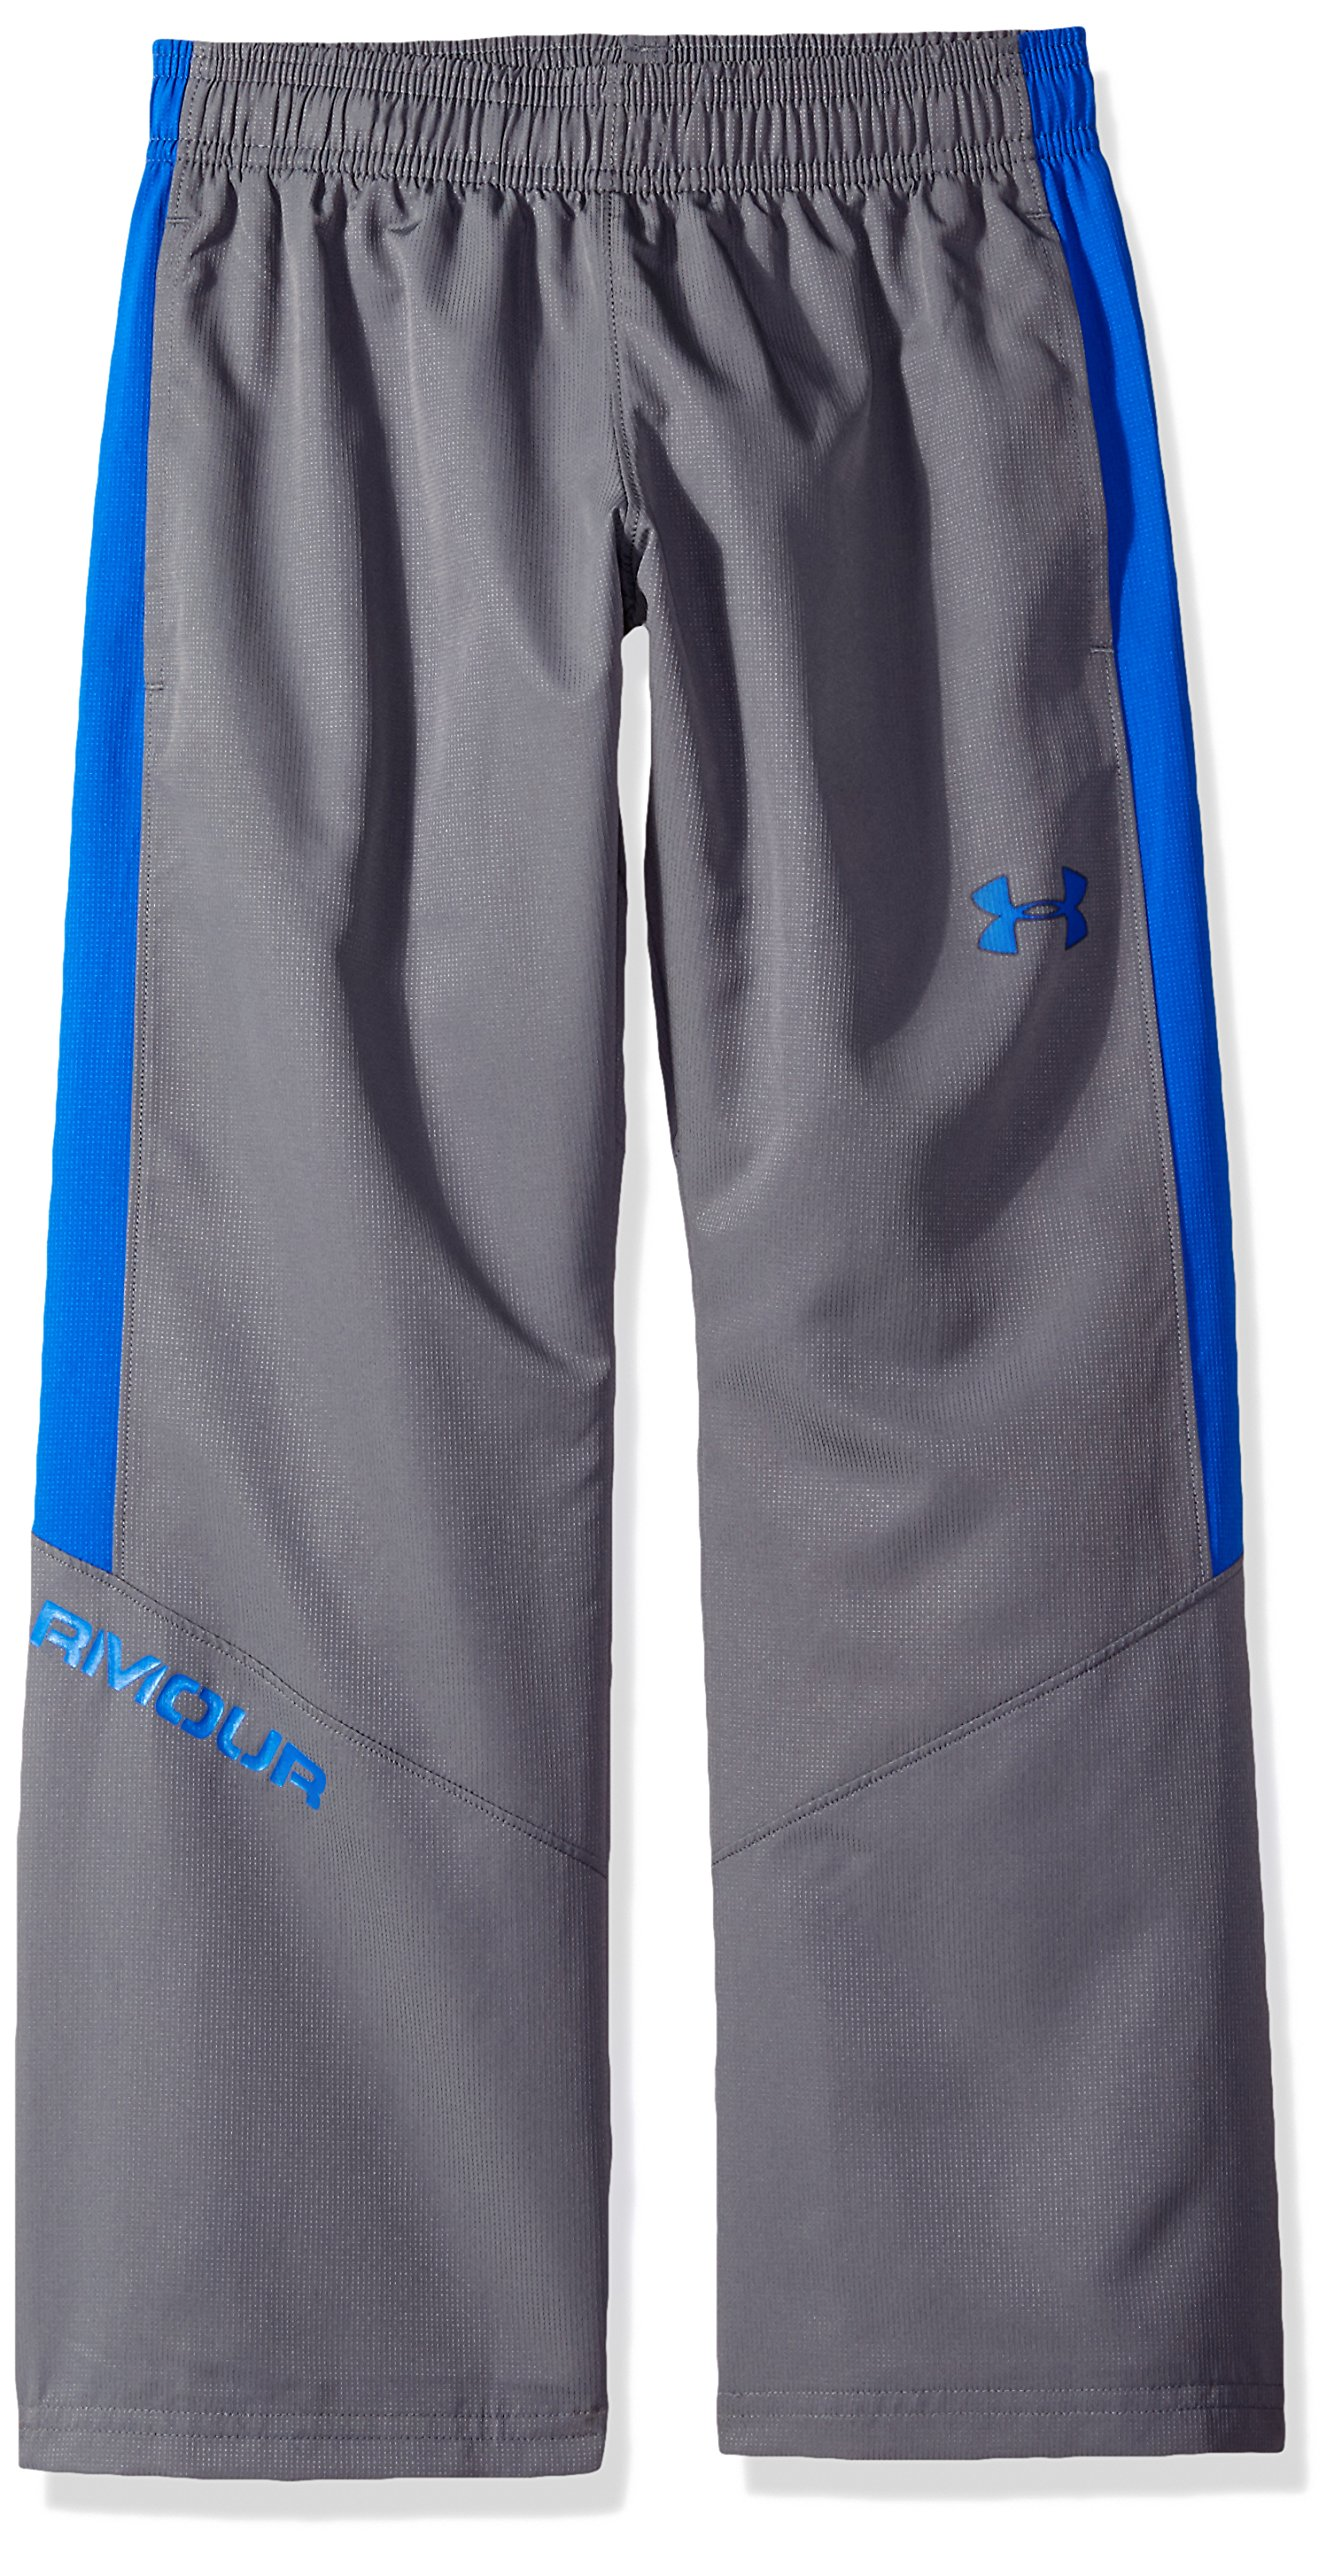 Under Armour Boys' Main Enforcer Woven Pants, Graphite/Ultra Blue, Youth Large by Under Armour